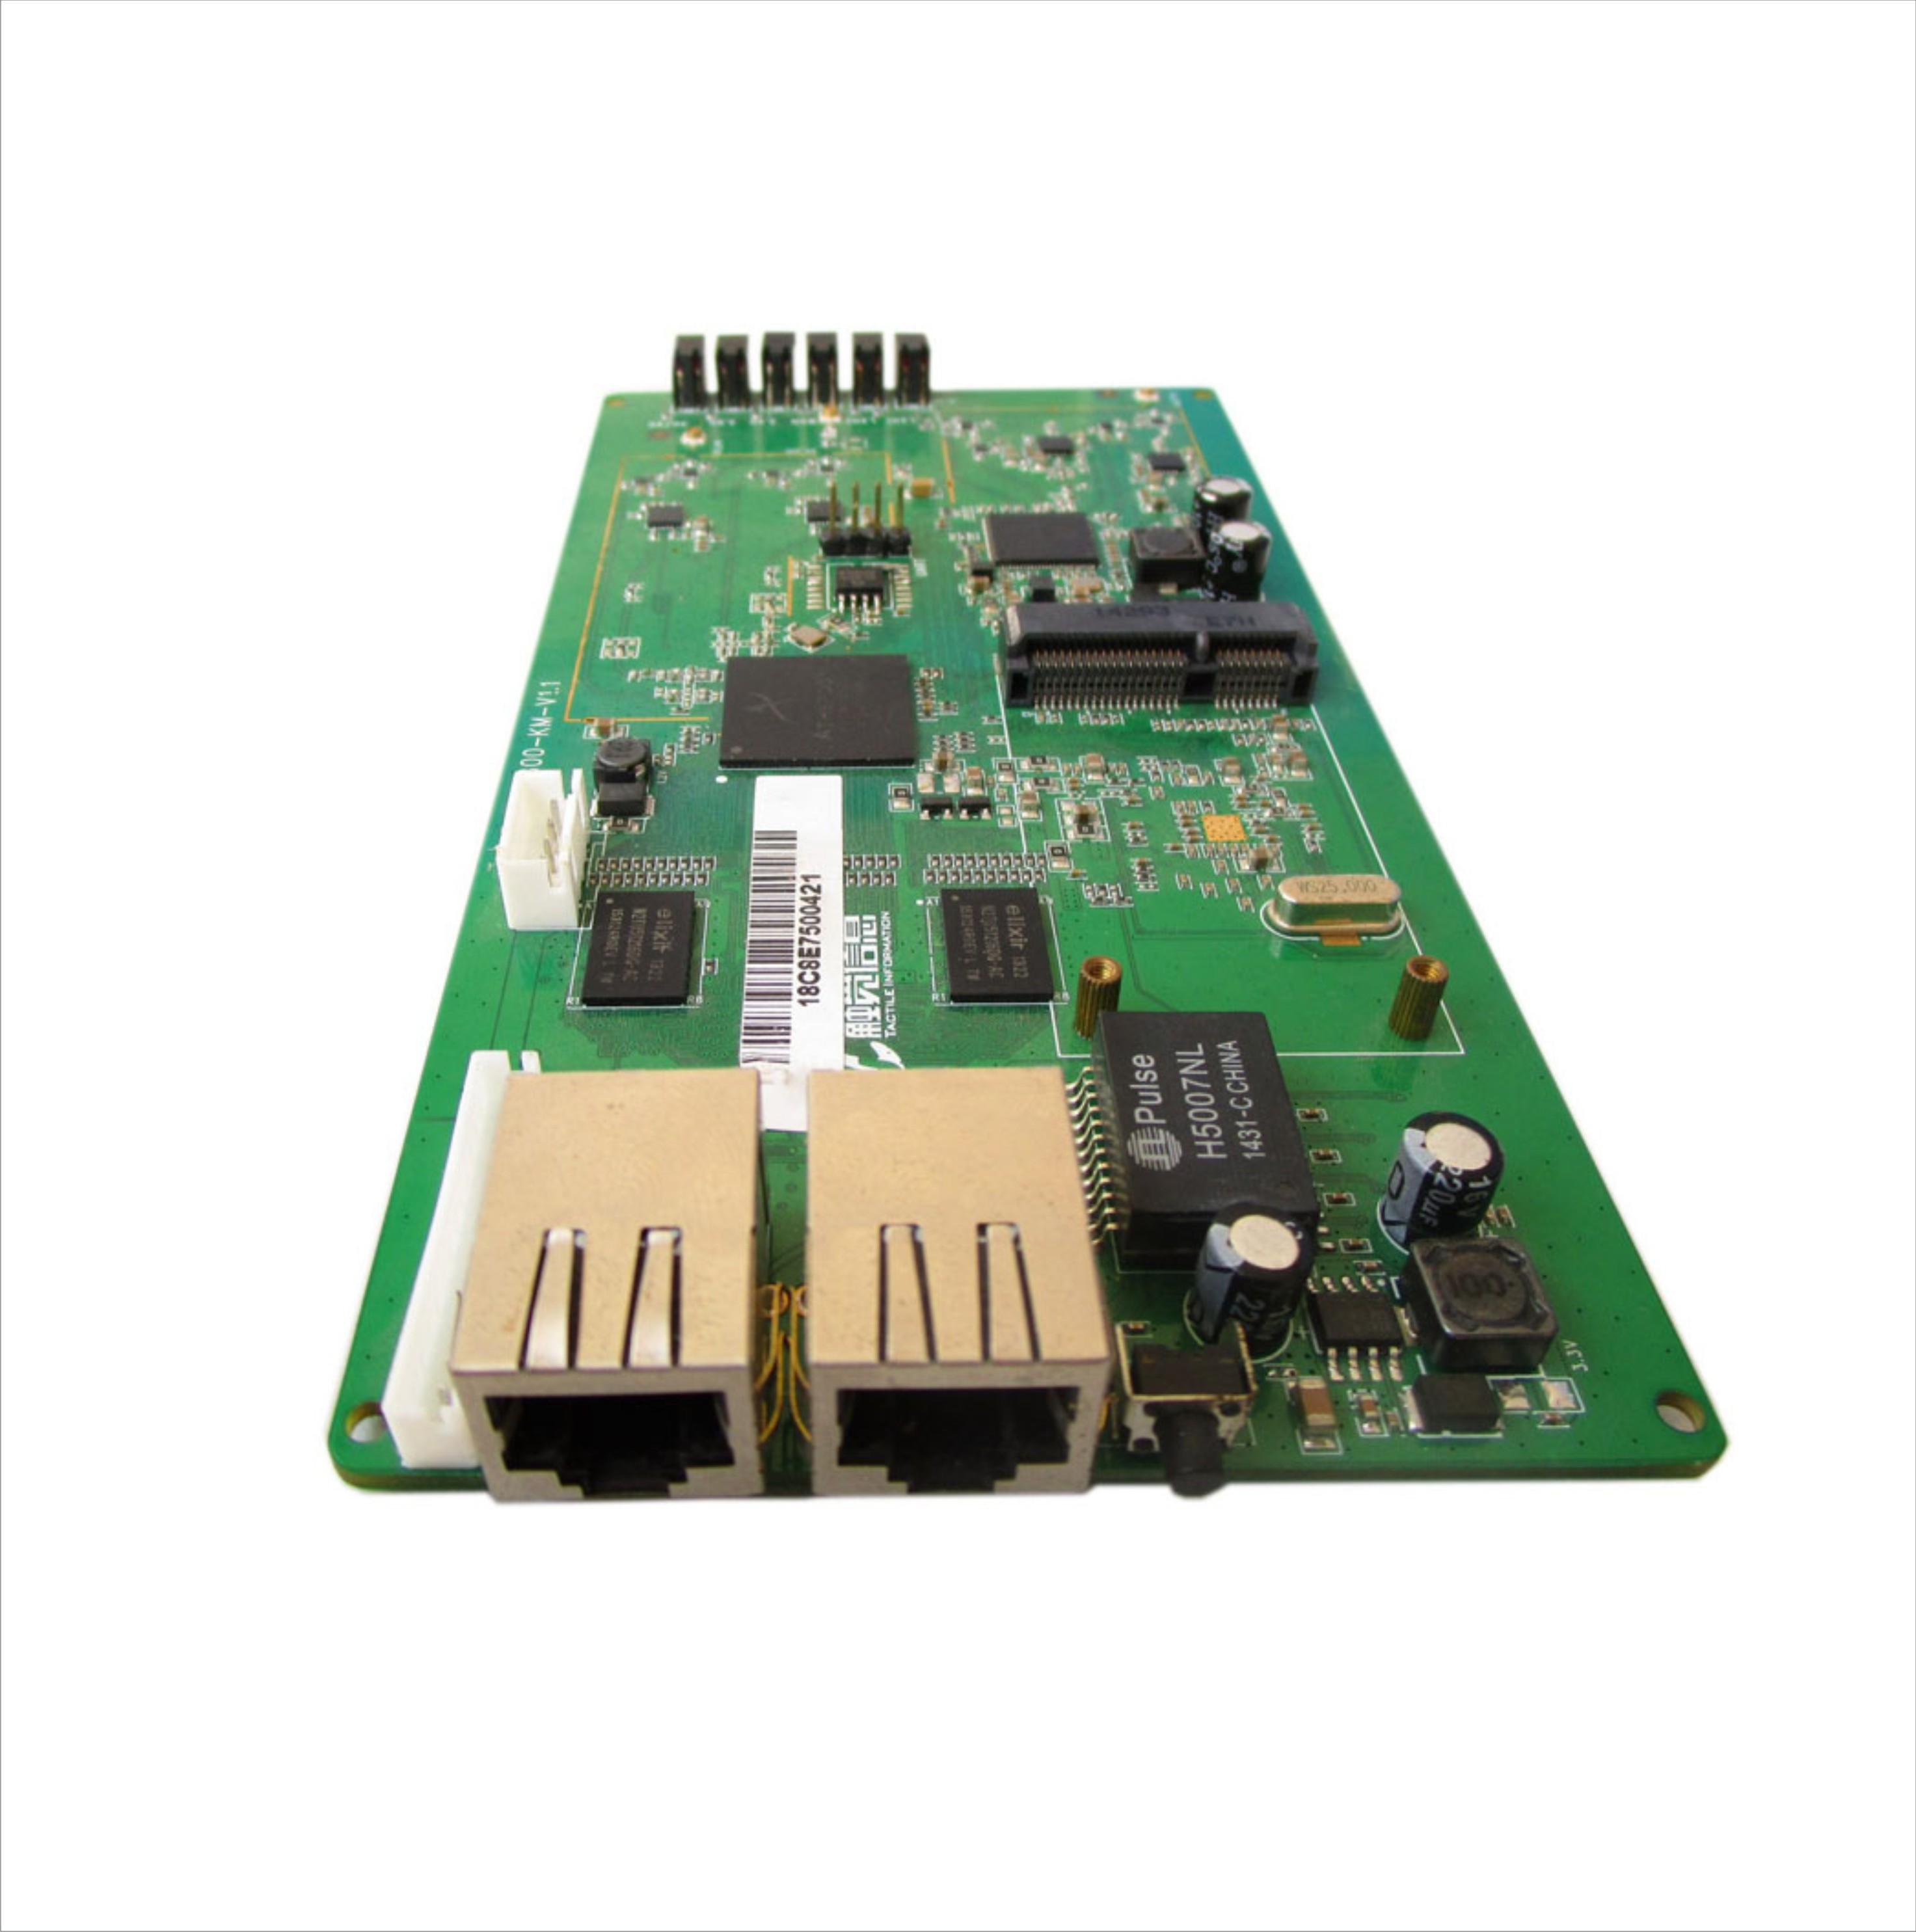 China Domestic Electronics Manufacturers Pcba Pcb Assembly Printed Circuit Board And Suppliers On Alibabacom